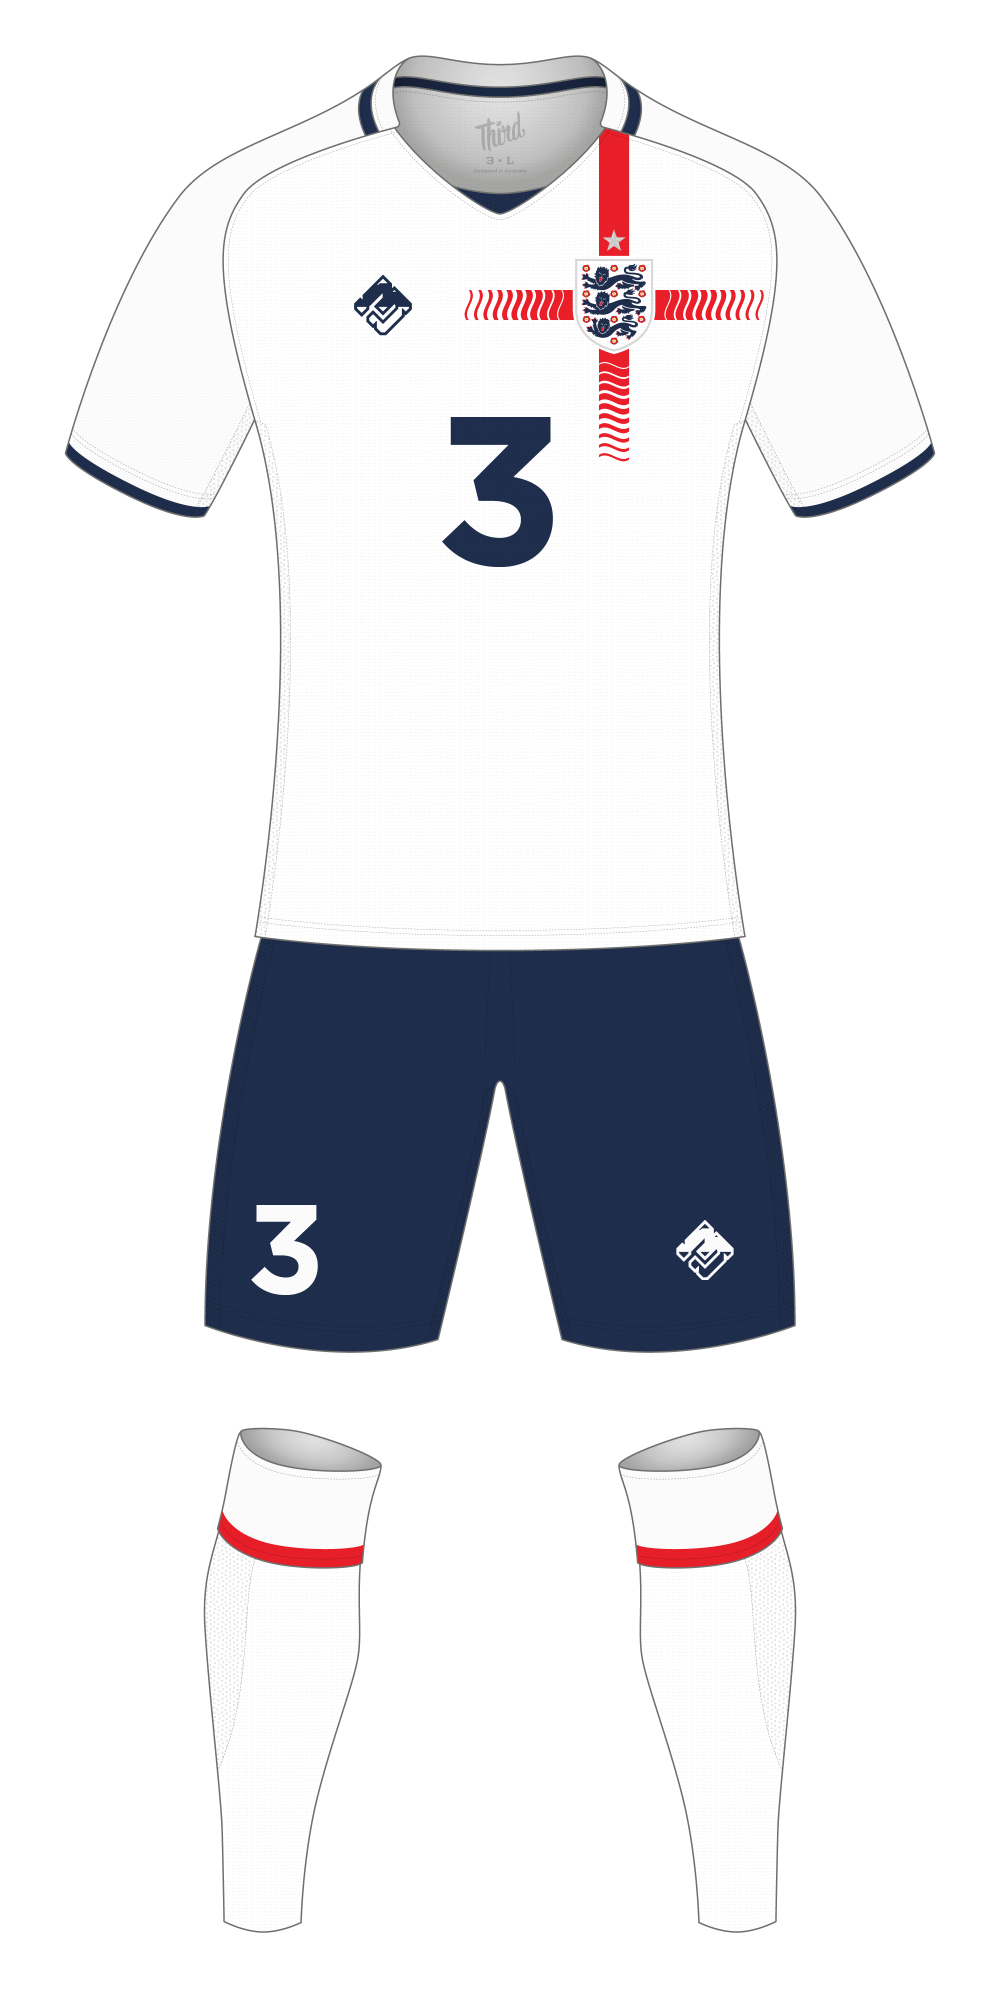 England World Cup 2018 concept